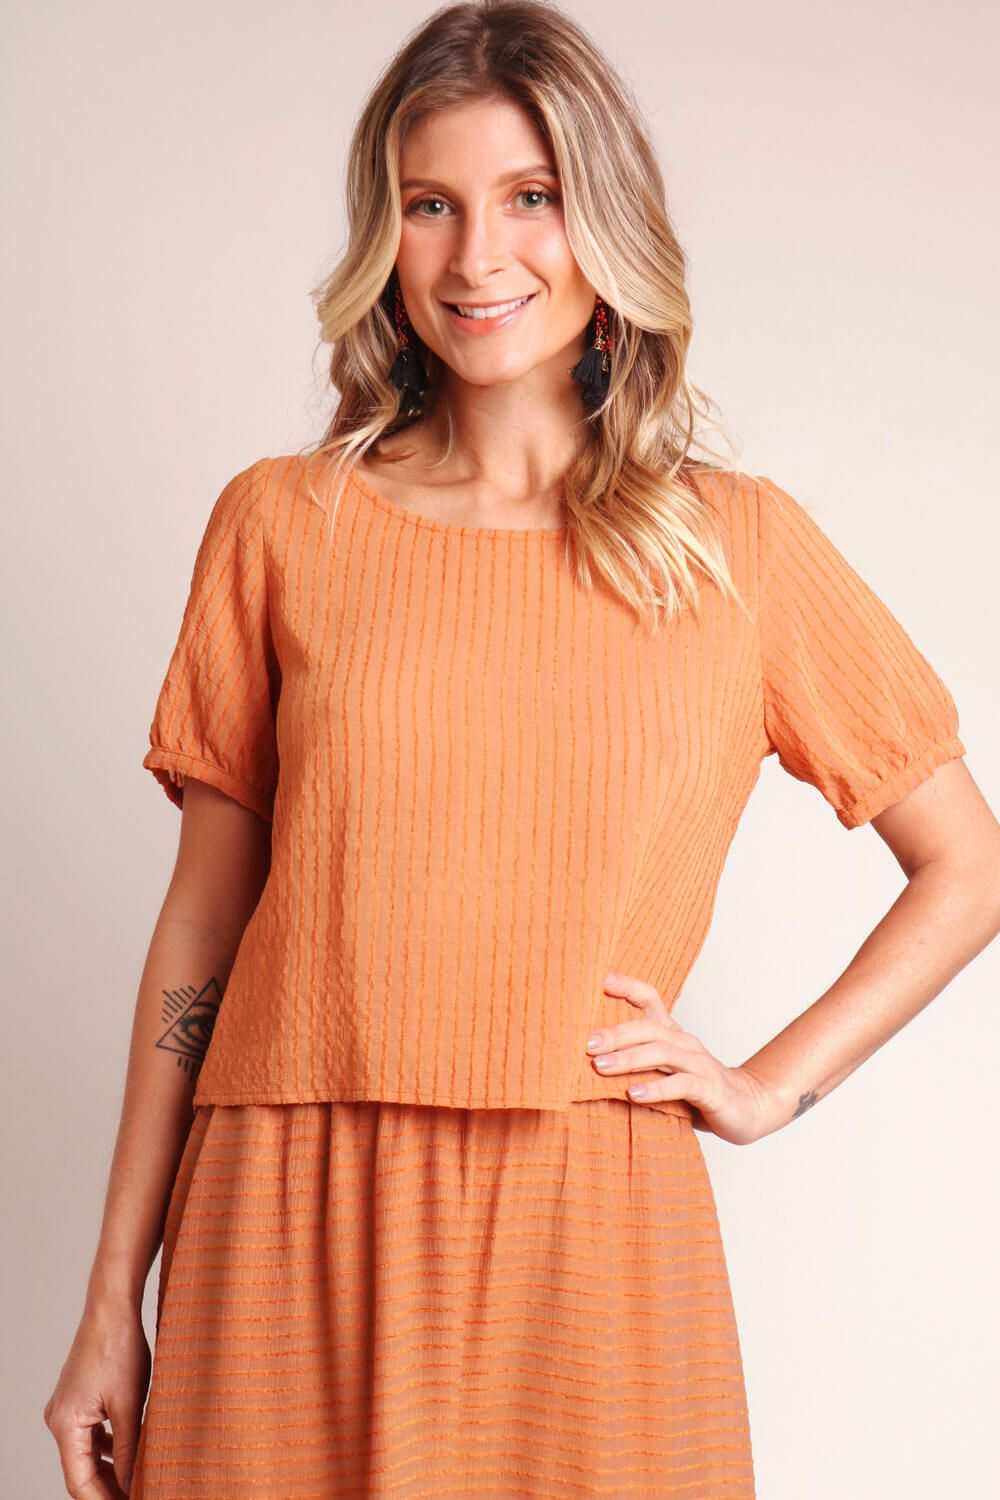 BLUSA LISA TERRACOTA